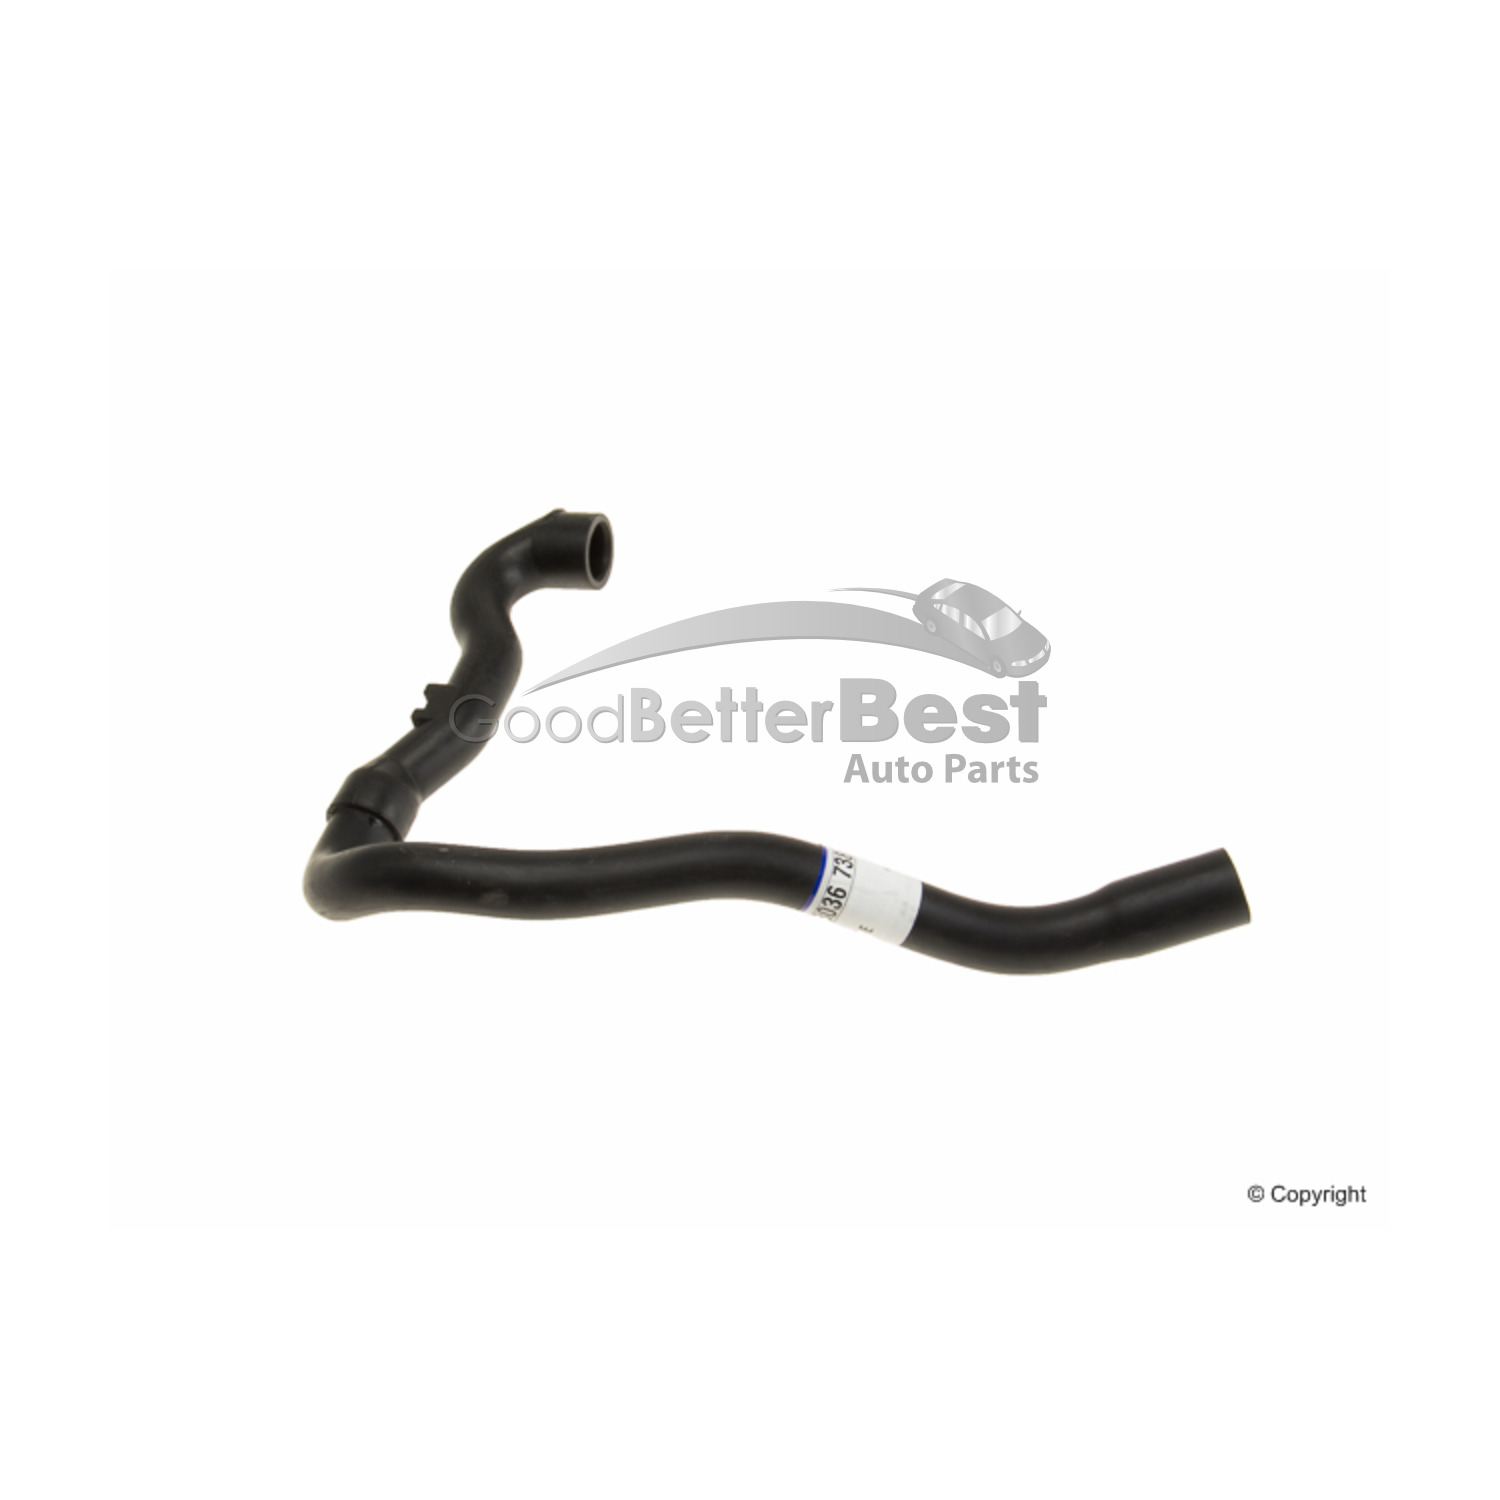 One New Uro Engine Crankcase Breather Hose For